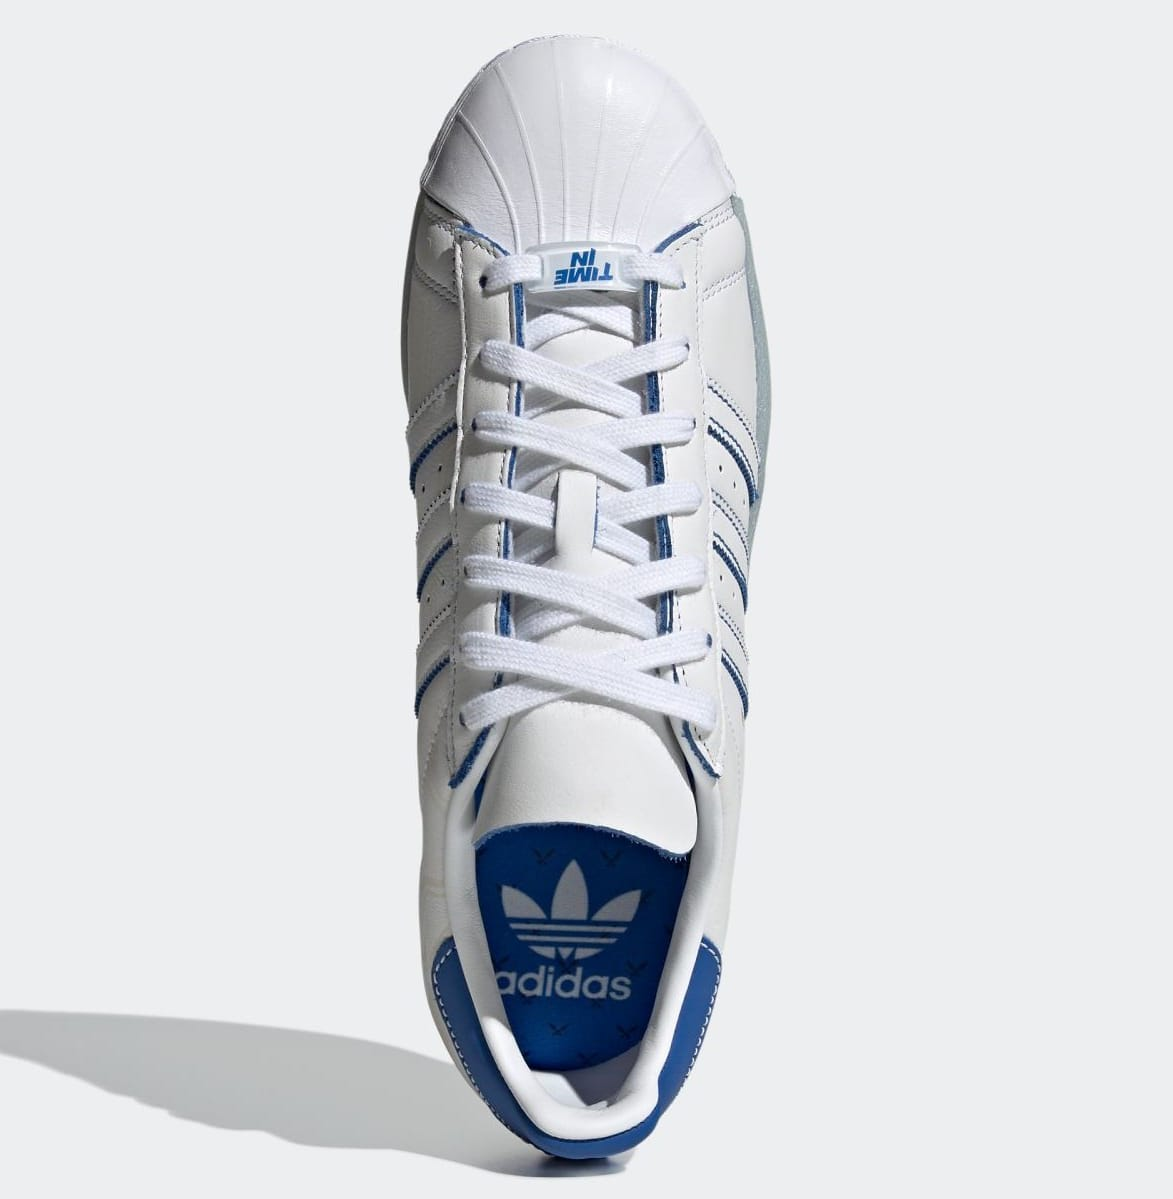 Ninja x Adidas Superstar FX2784 Top